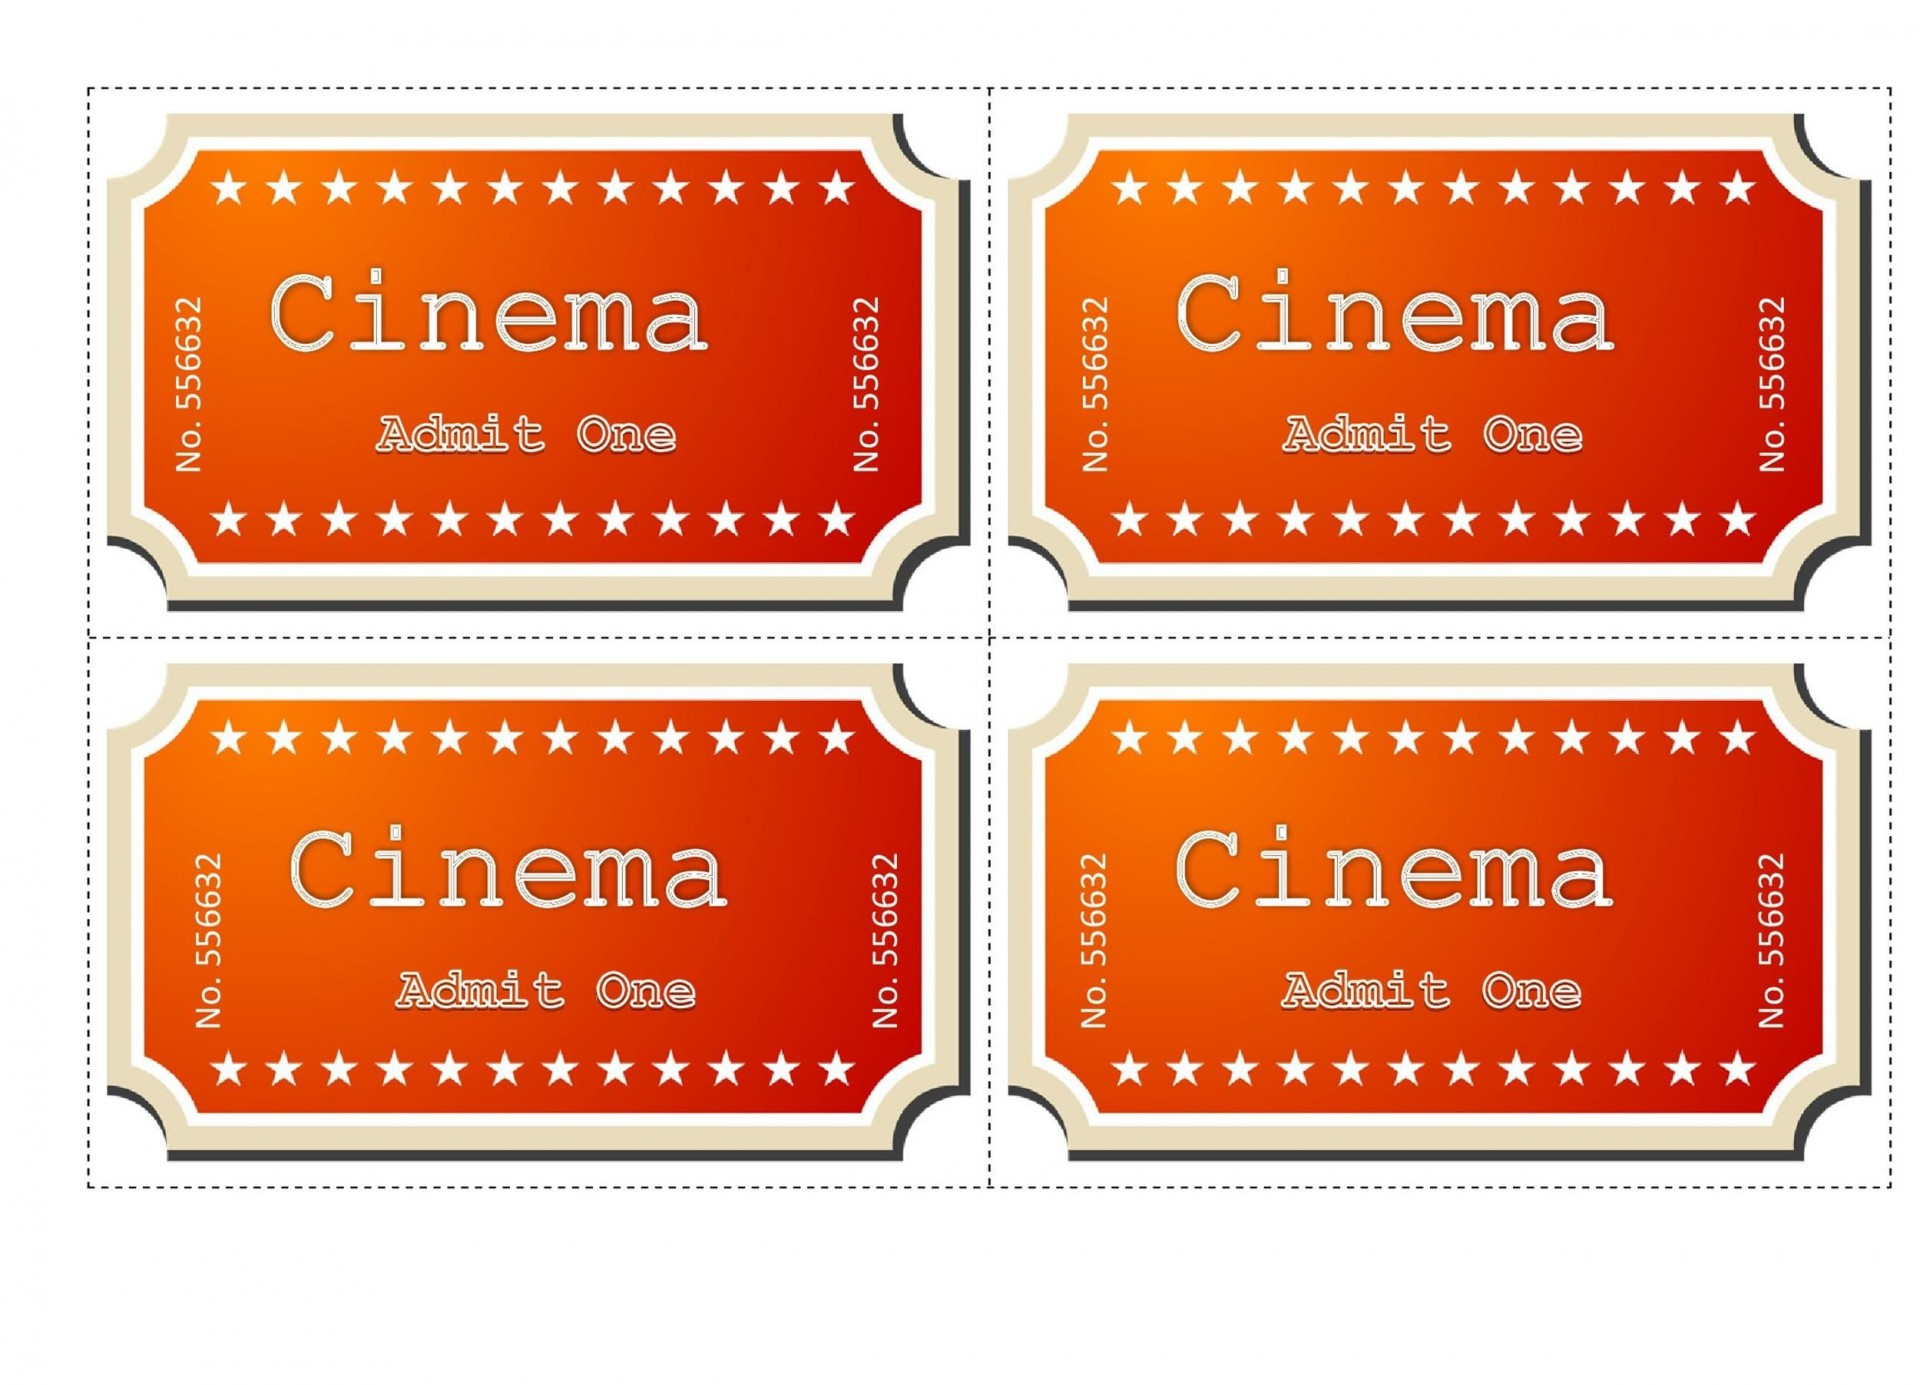 009 Remarkable Editable Ticket Template Free Highest Quality  Word Airline Raffle1920